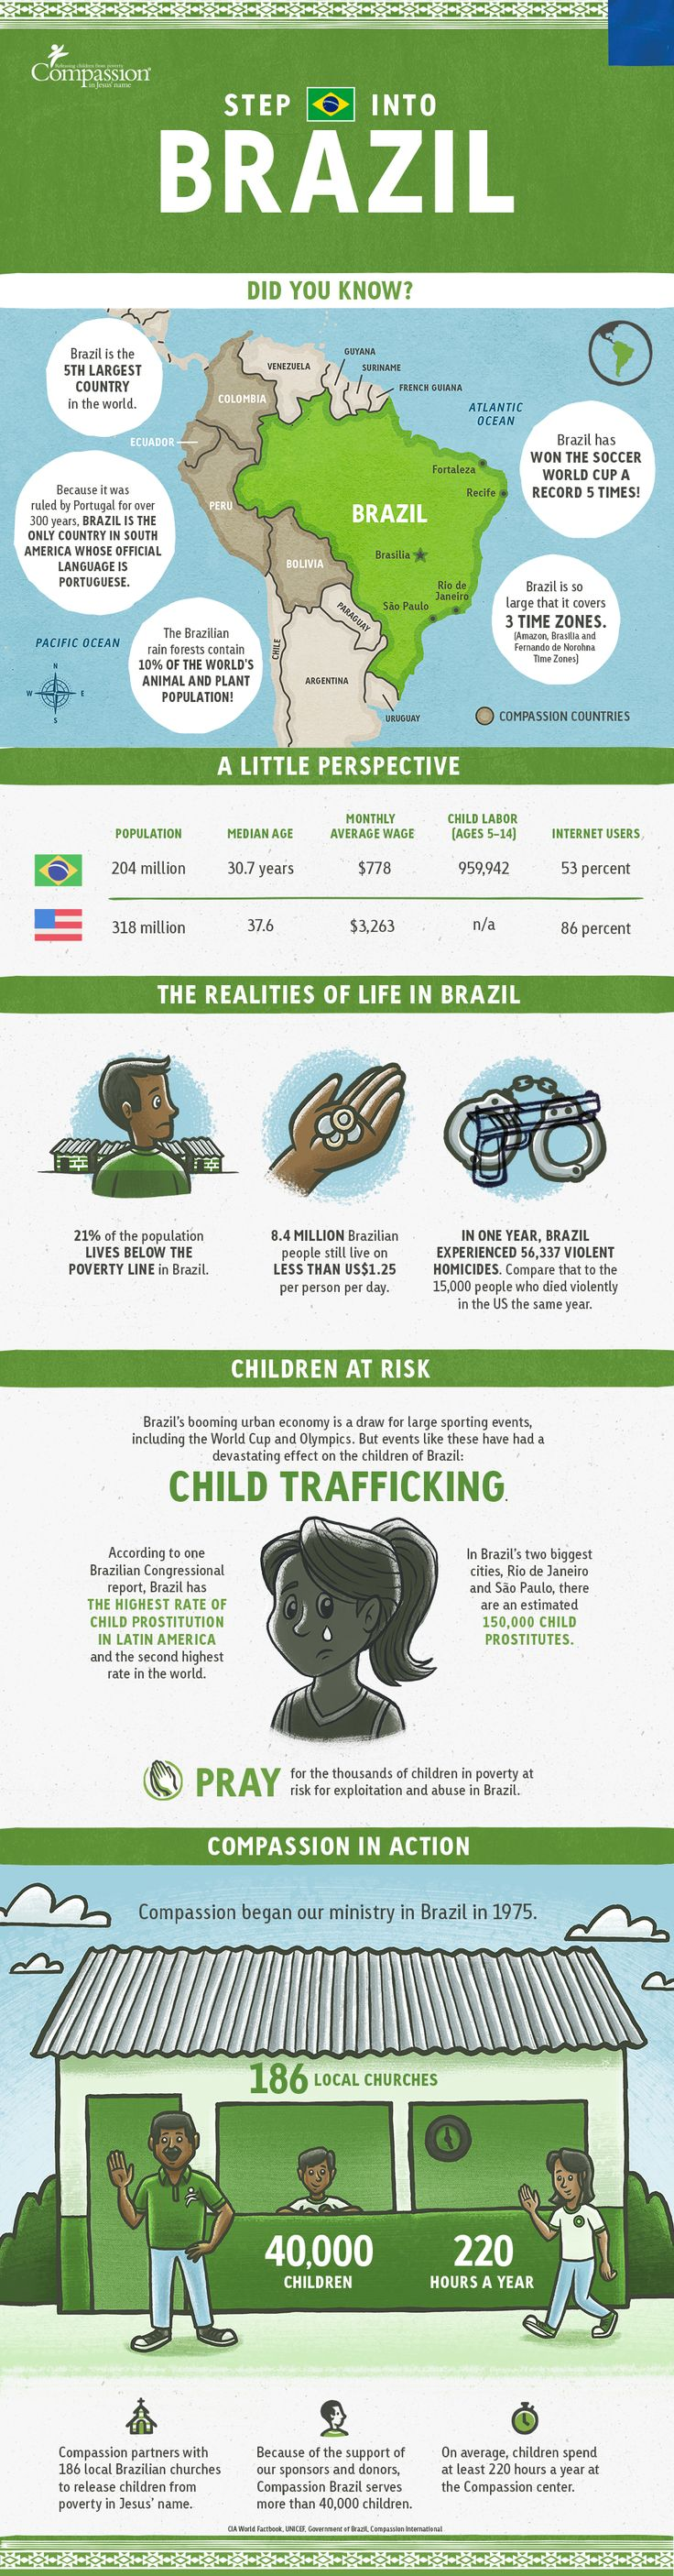 Before the 2016 Olympics begin in Brazil, take some time to learn about the diverse country and the issues that face children in poverty there with this informative infographic.#Olympics2016